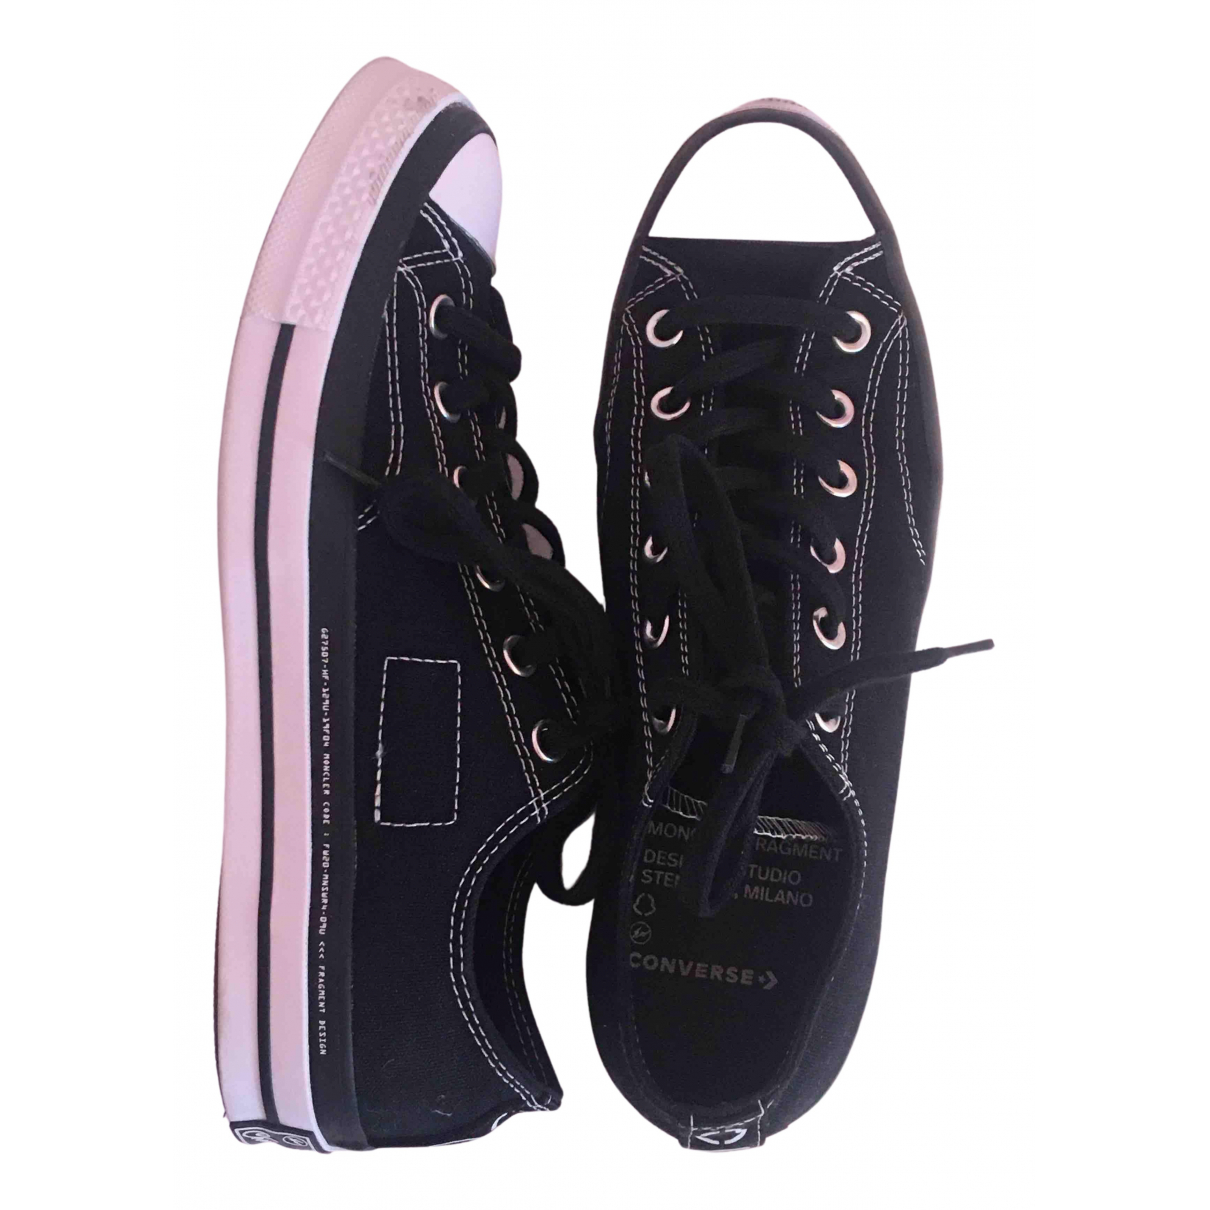 Converse N Black Cloth Trainers for Women 41.5 EU